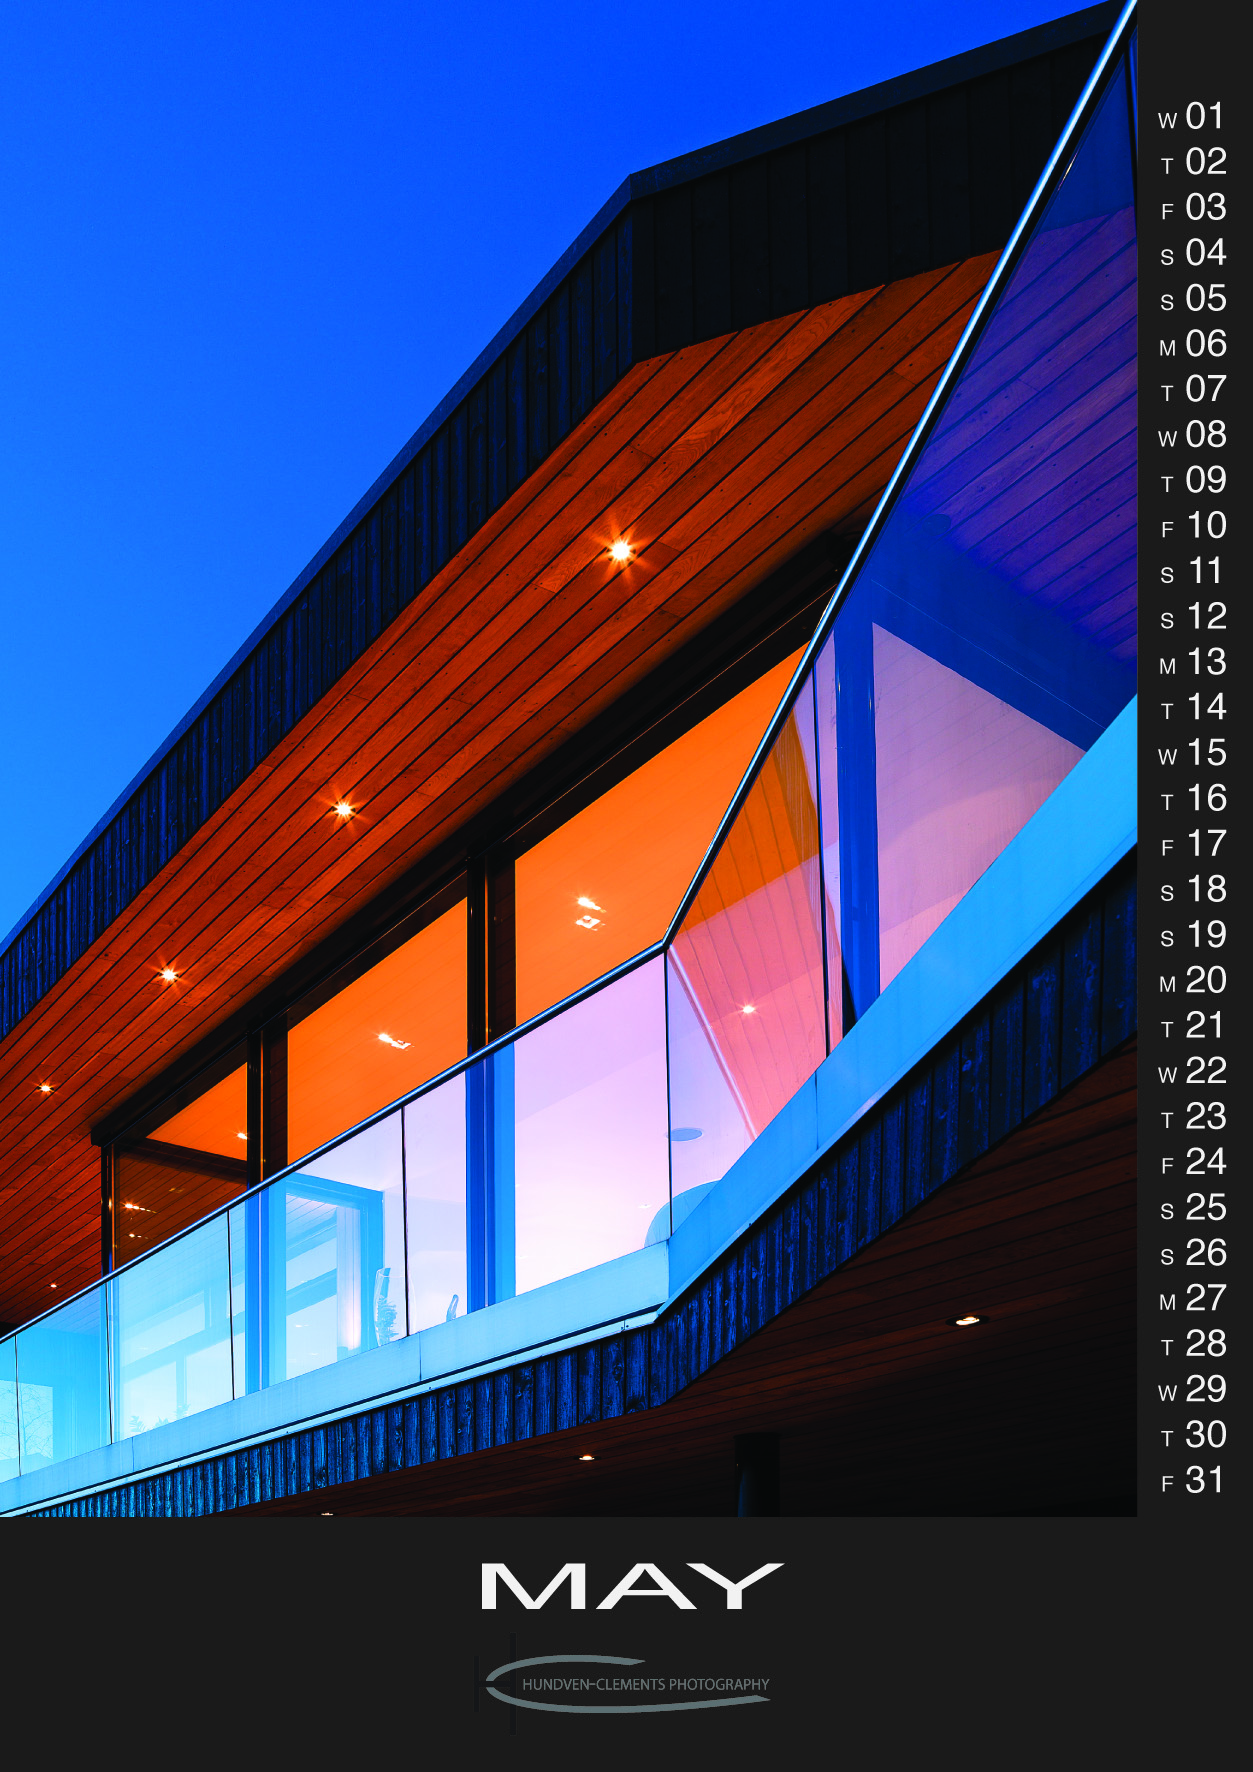 architectural calendar issue available for 2013 architectural calendar issue available for